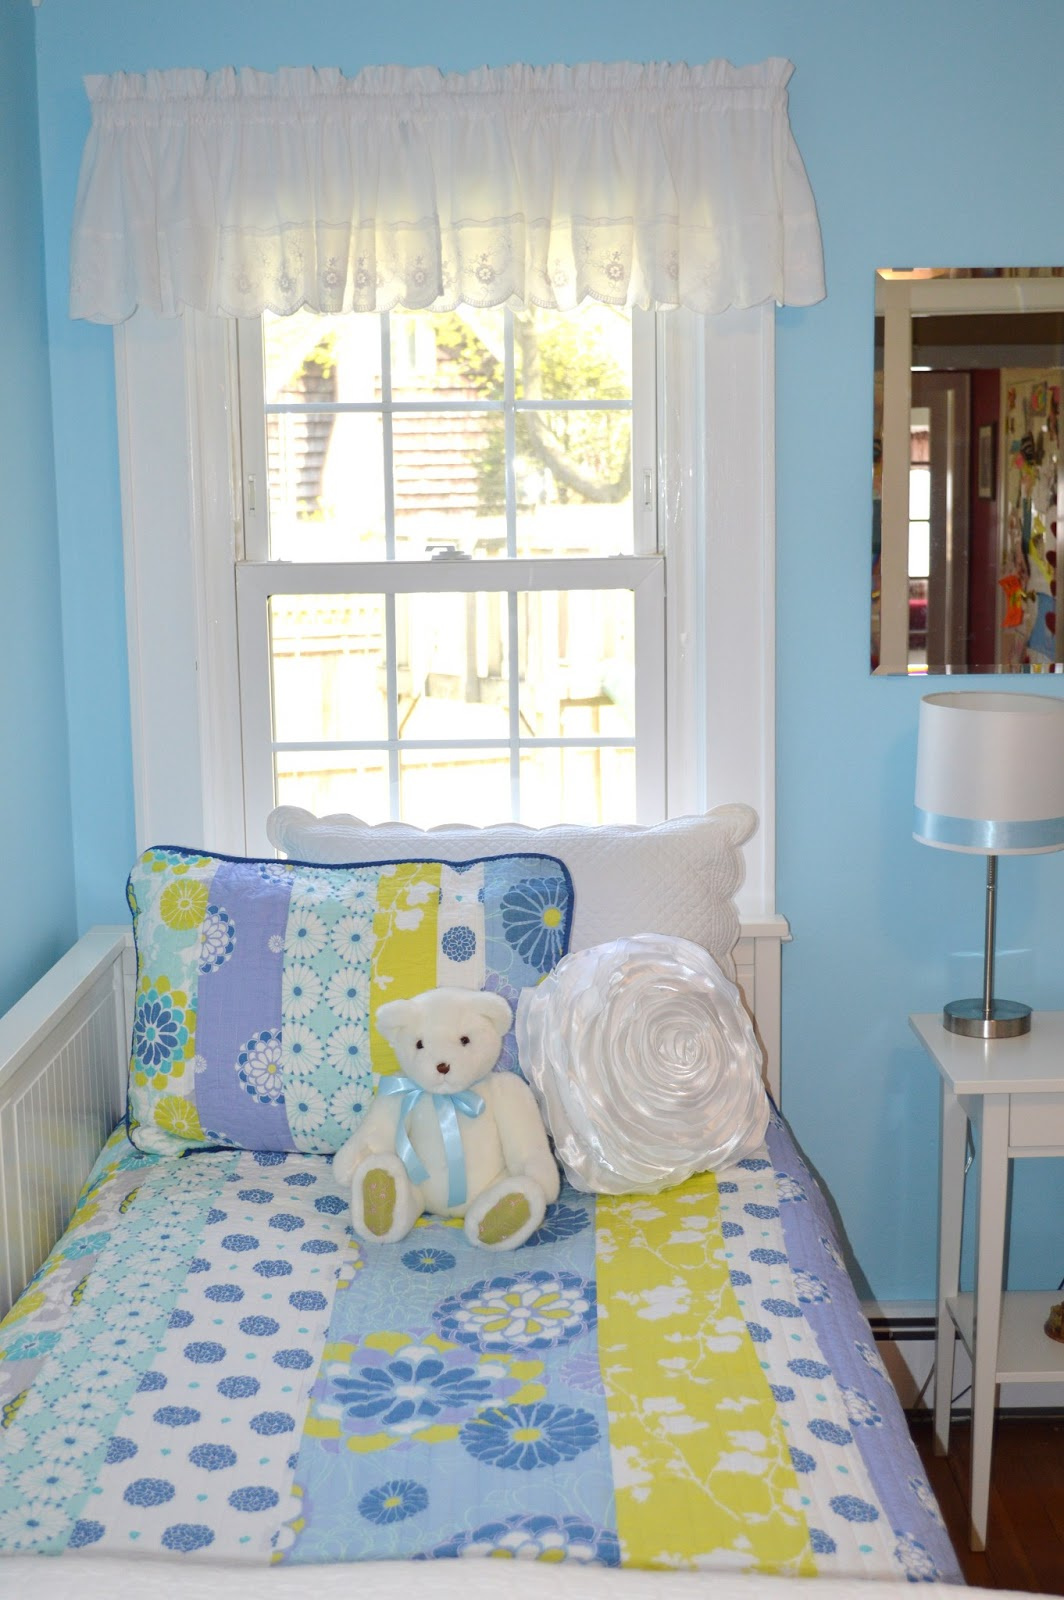 Blue bedroom for girls with teddy bear and floral pillow